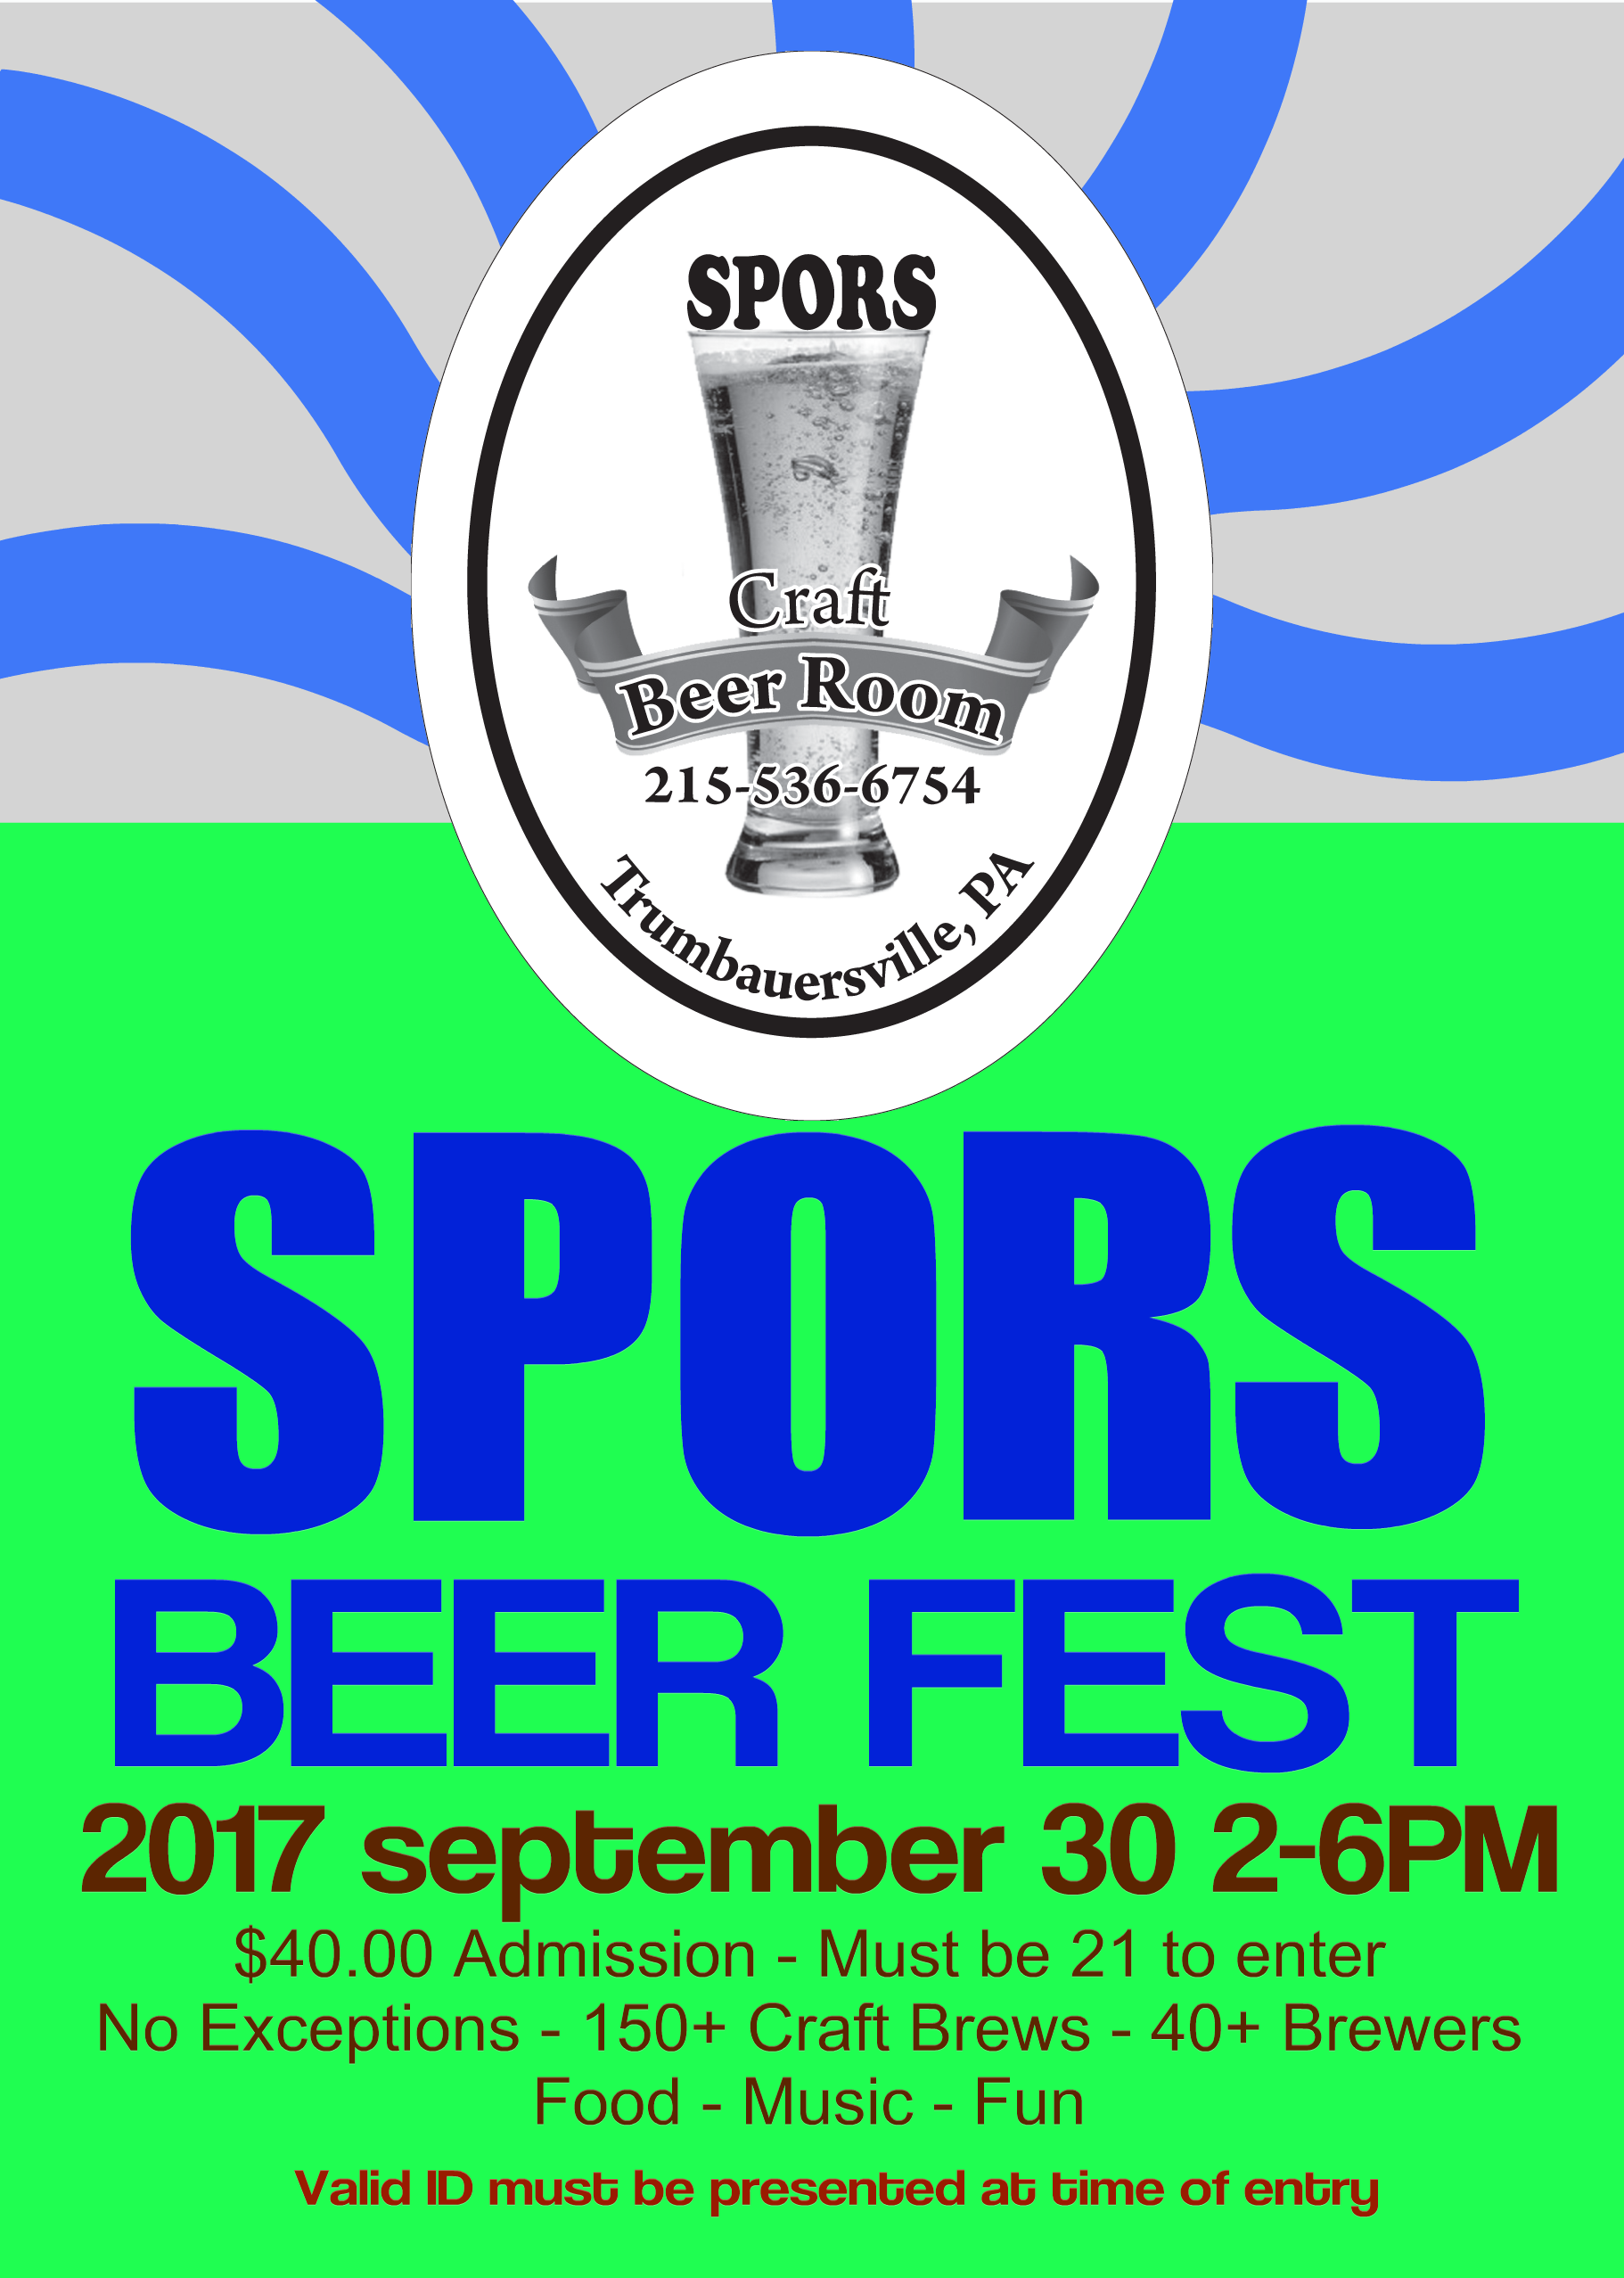 Spors Fourth Annual Beer Fest